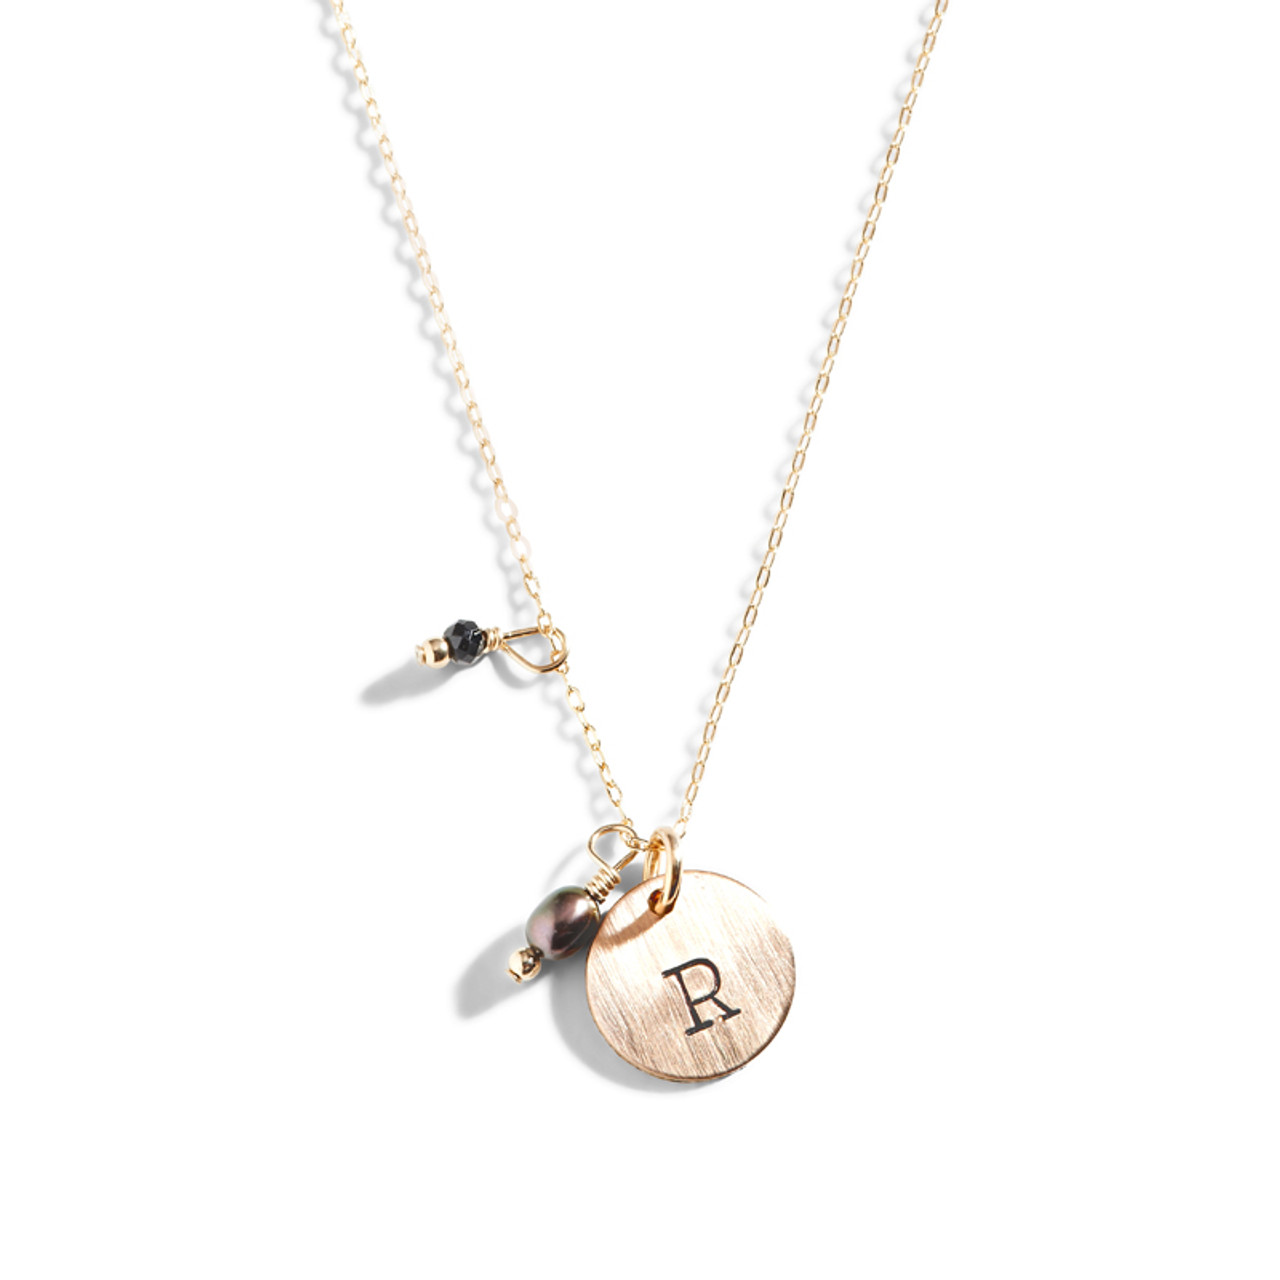 Gold Initial Disc Necklace Tiny Gold Disc Necklace with Initial